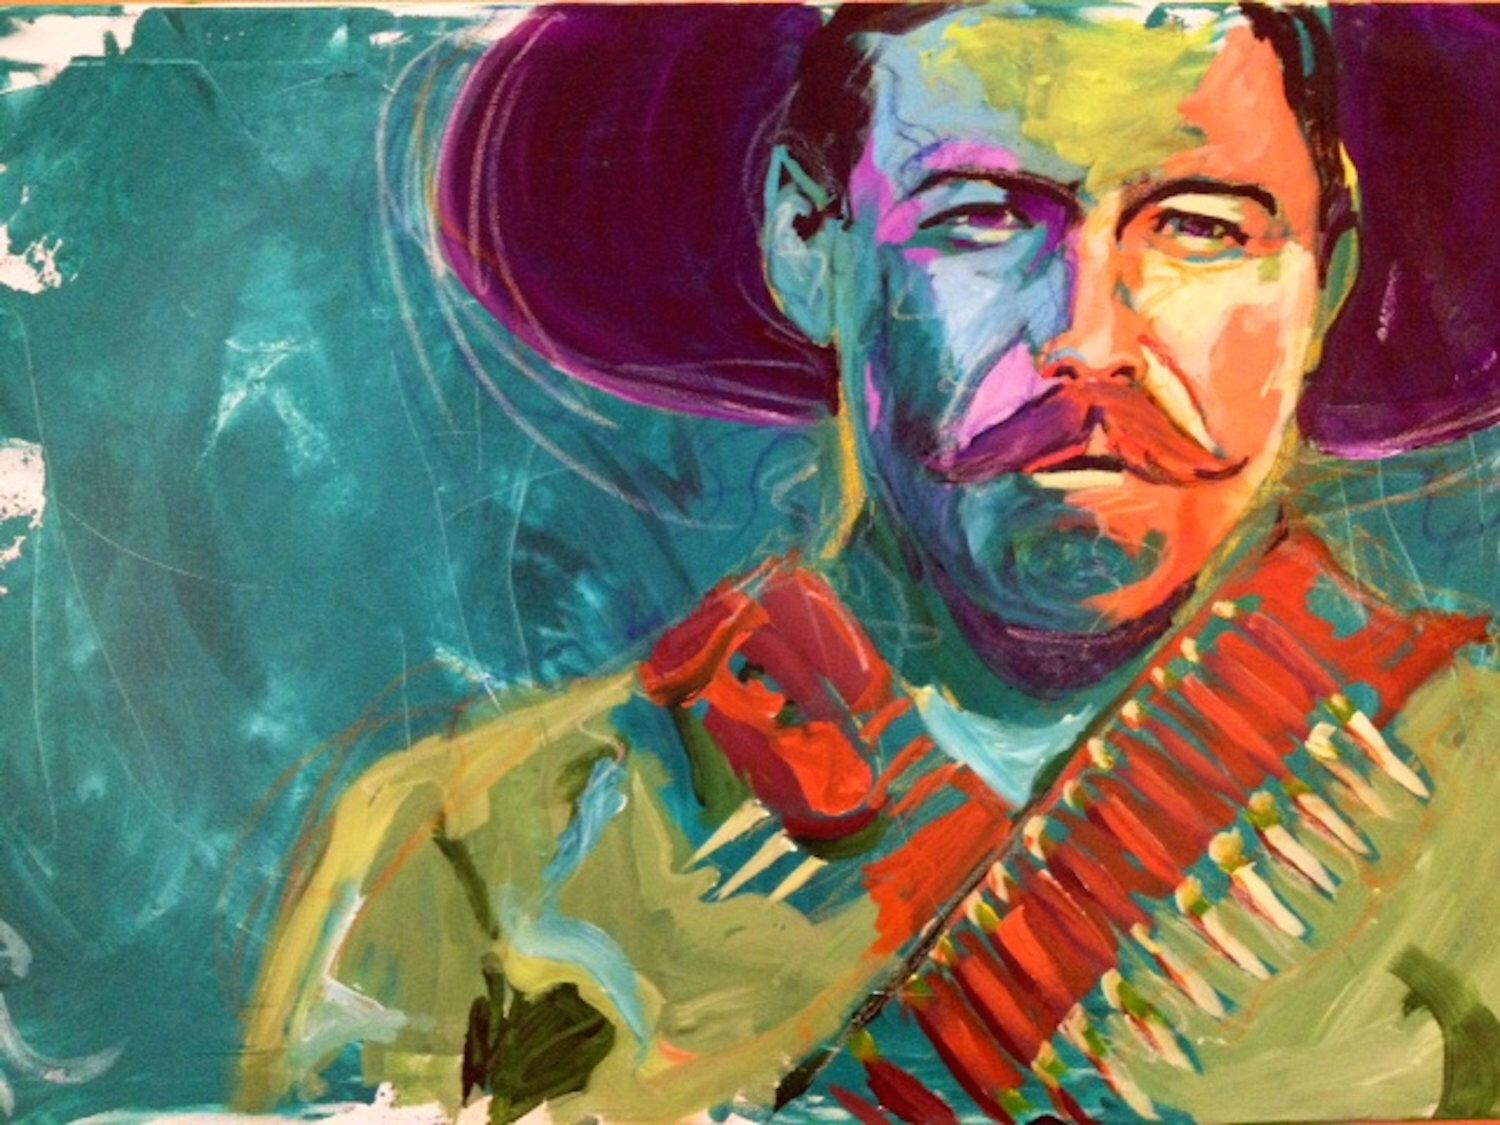 pancho villa portrait giclee canvas mexican celebrity print wall pancho villa art print by alejandro castanon worldwide shipping available at just one of millions of high quality products available